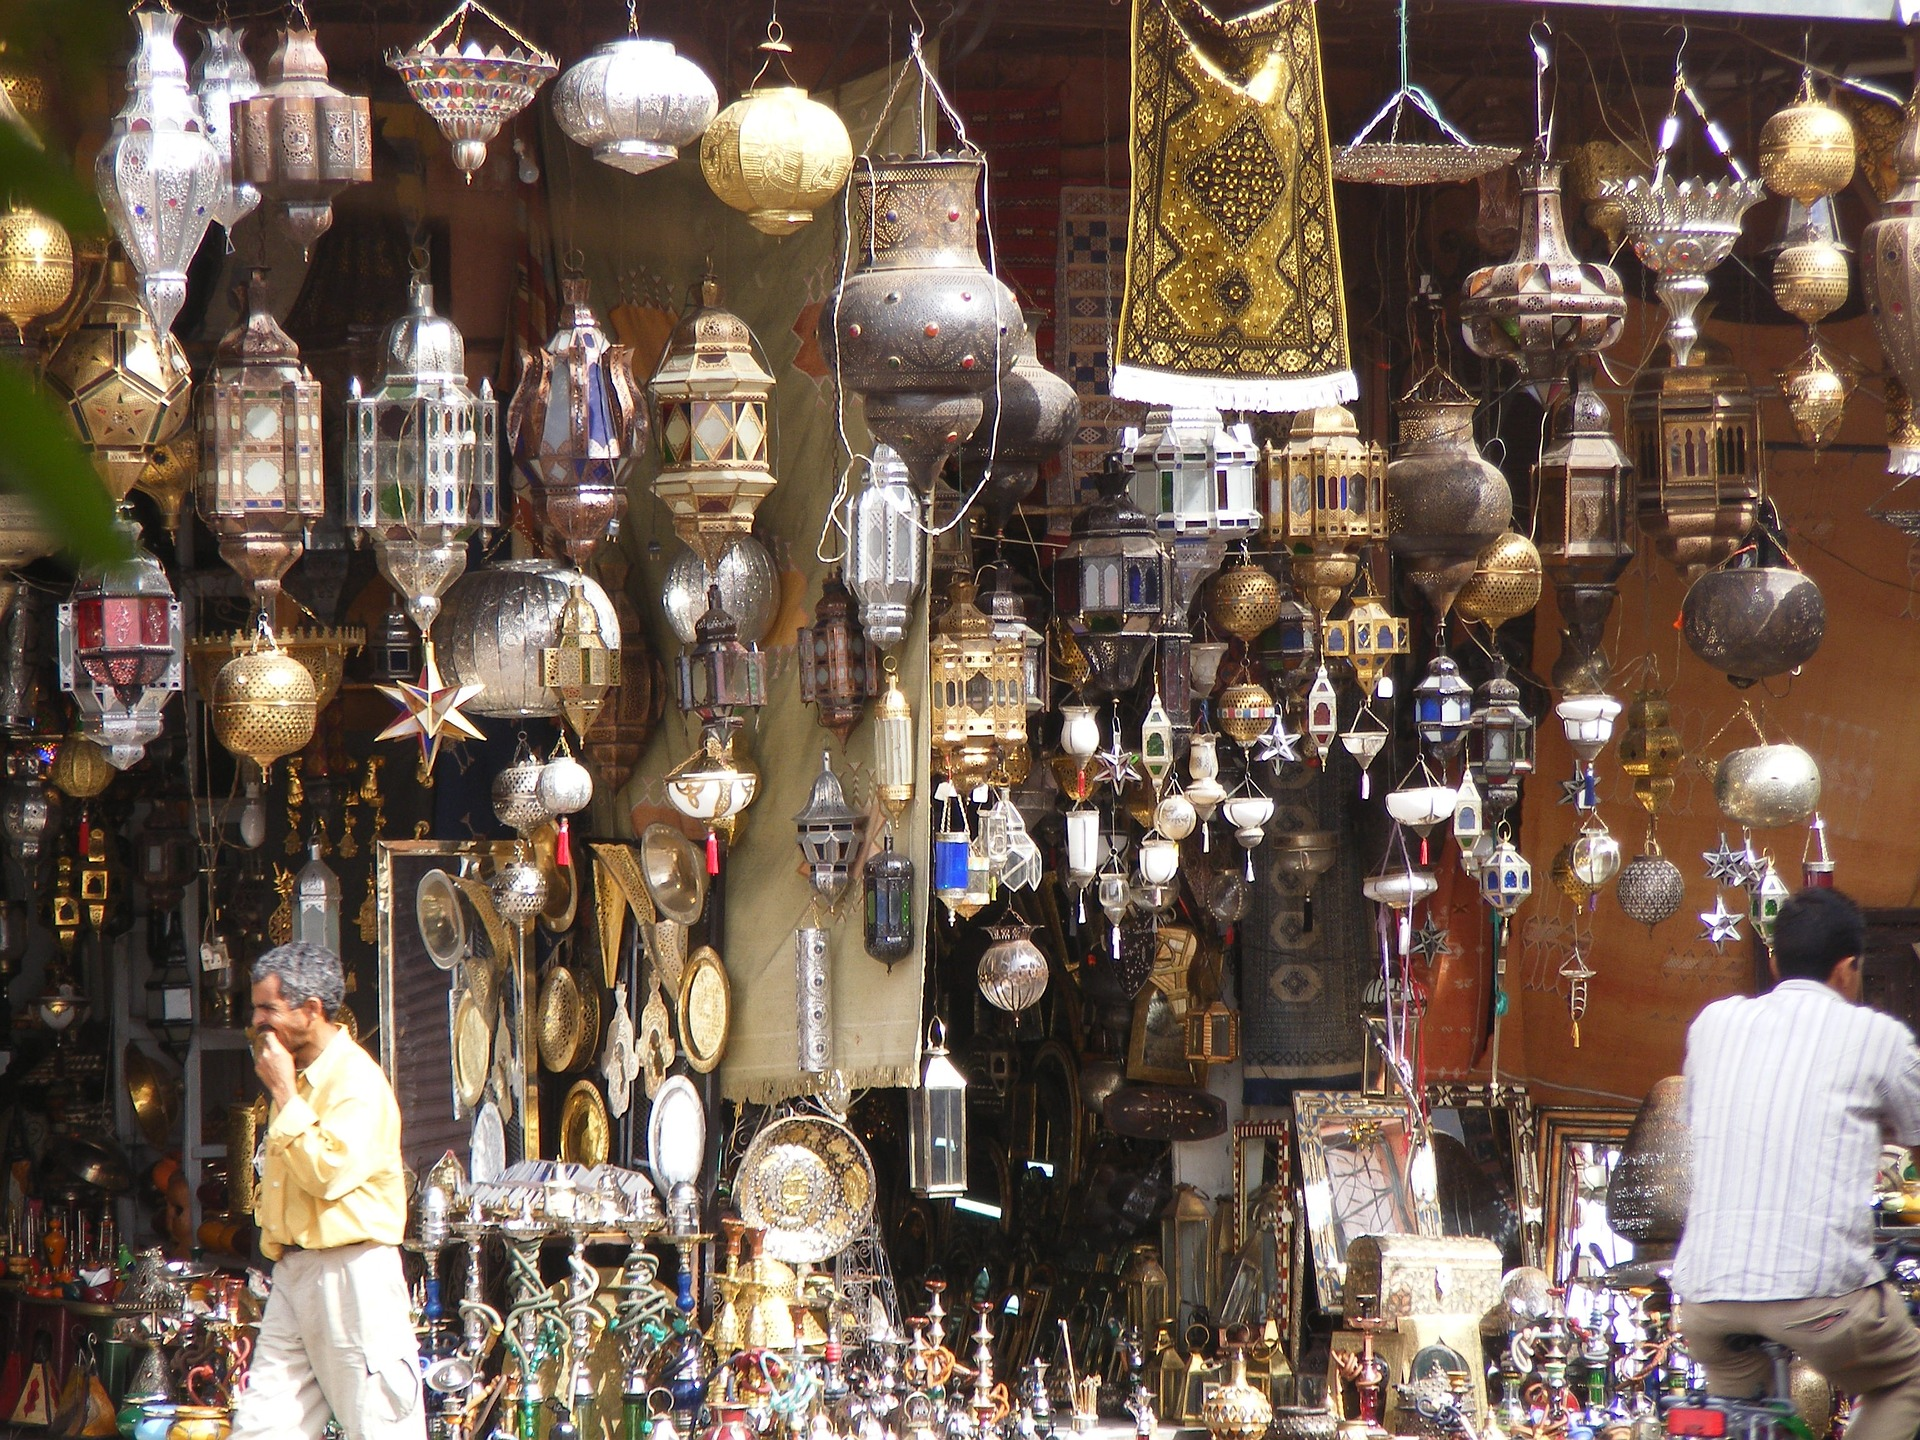 Lamps beautifully displayed in a souk within the Marrakech medina.